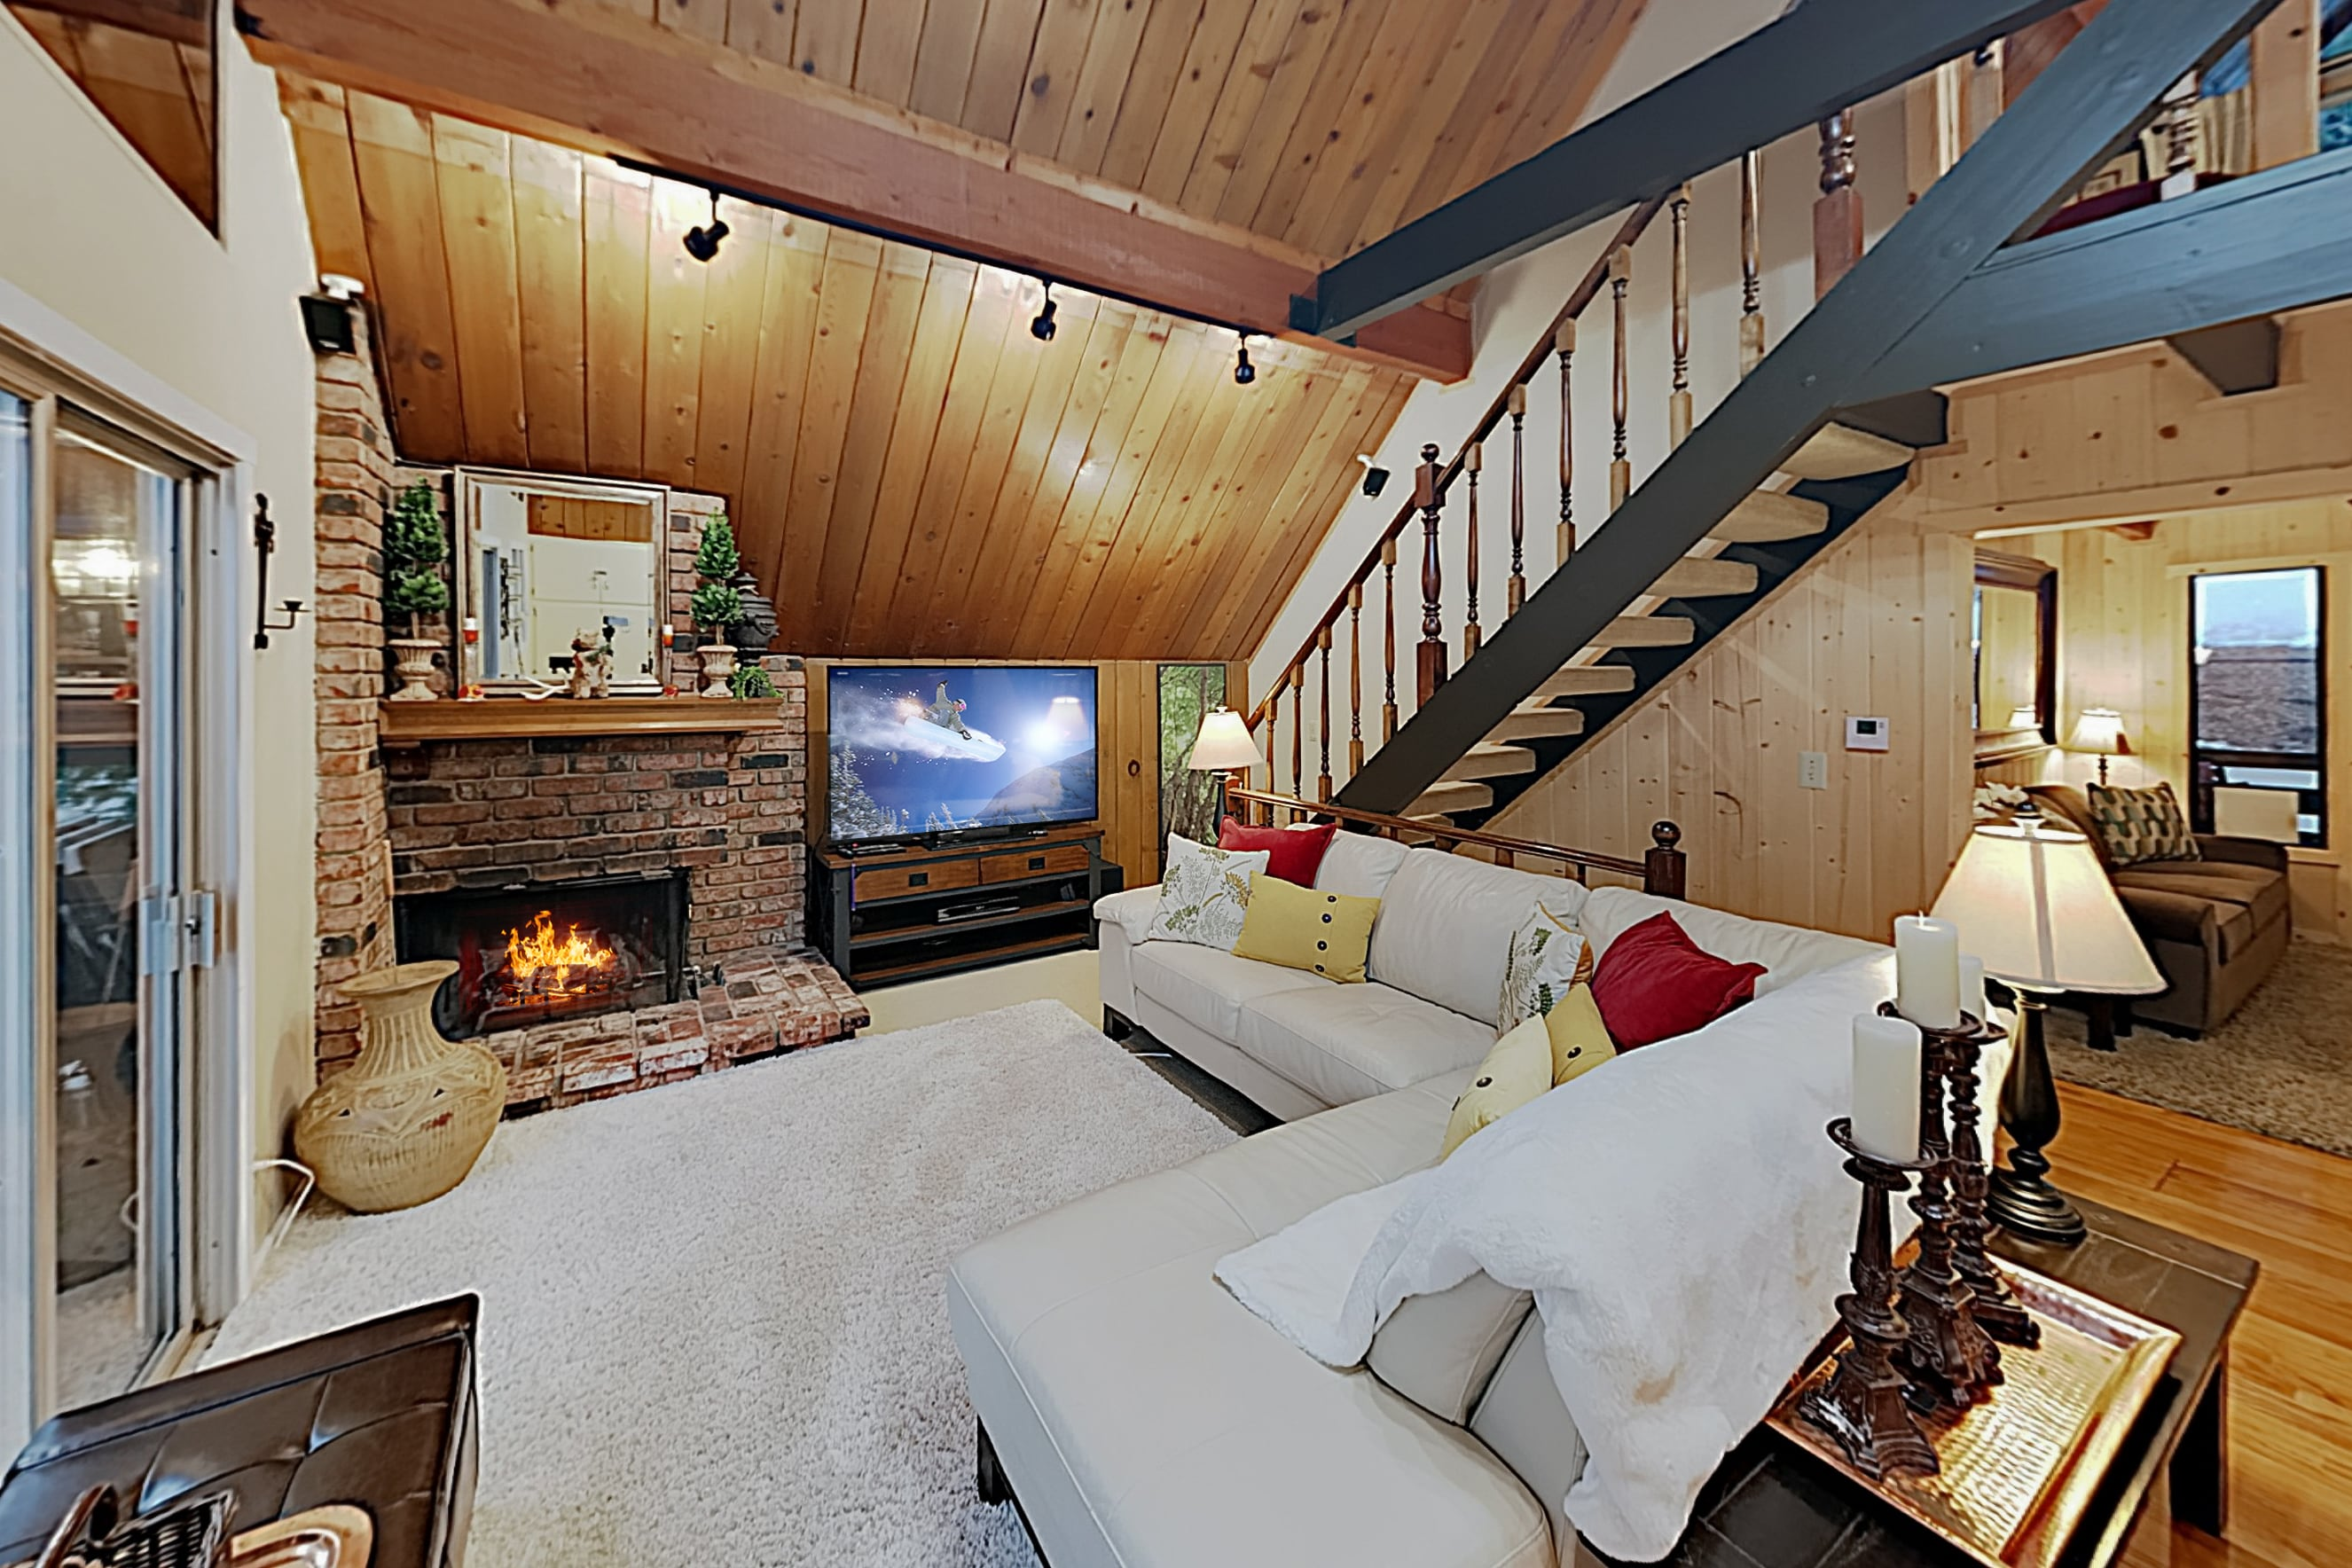 Welcome to Lake Arrowhead! This home is professionally managed by TurnKey Vacation Rentals.